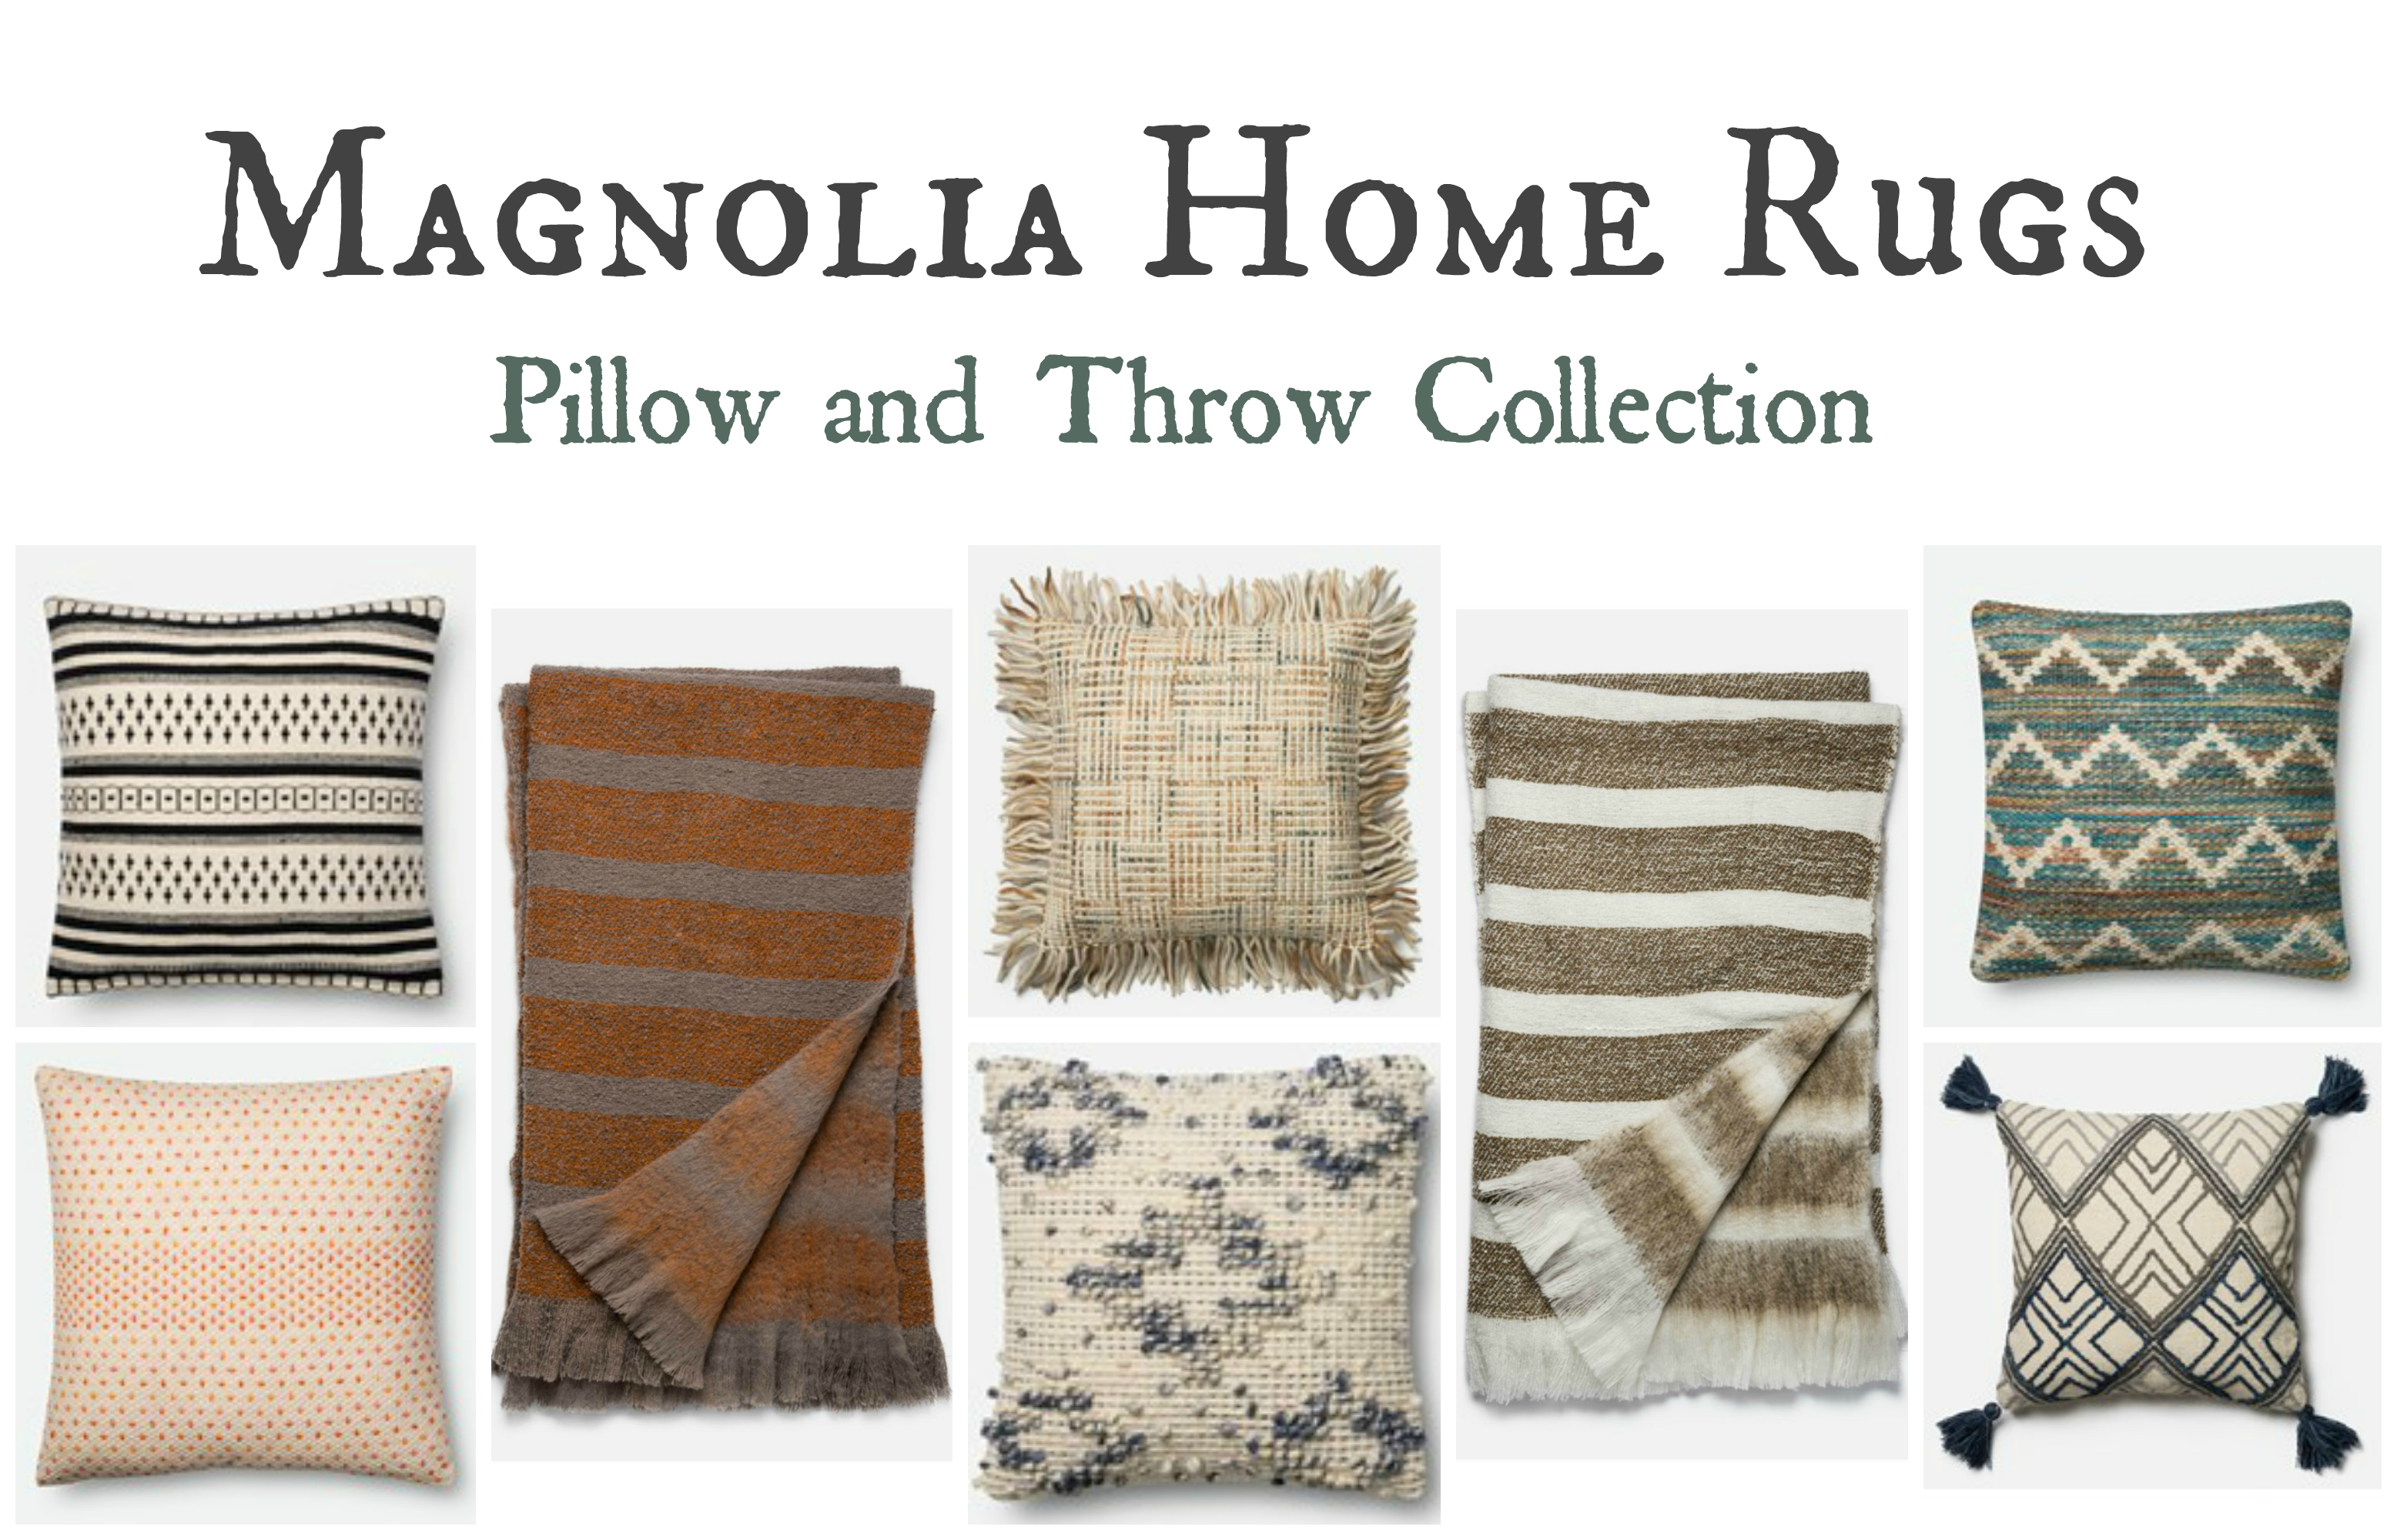 Magnolia Home Pillows and Throws